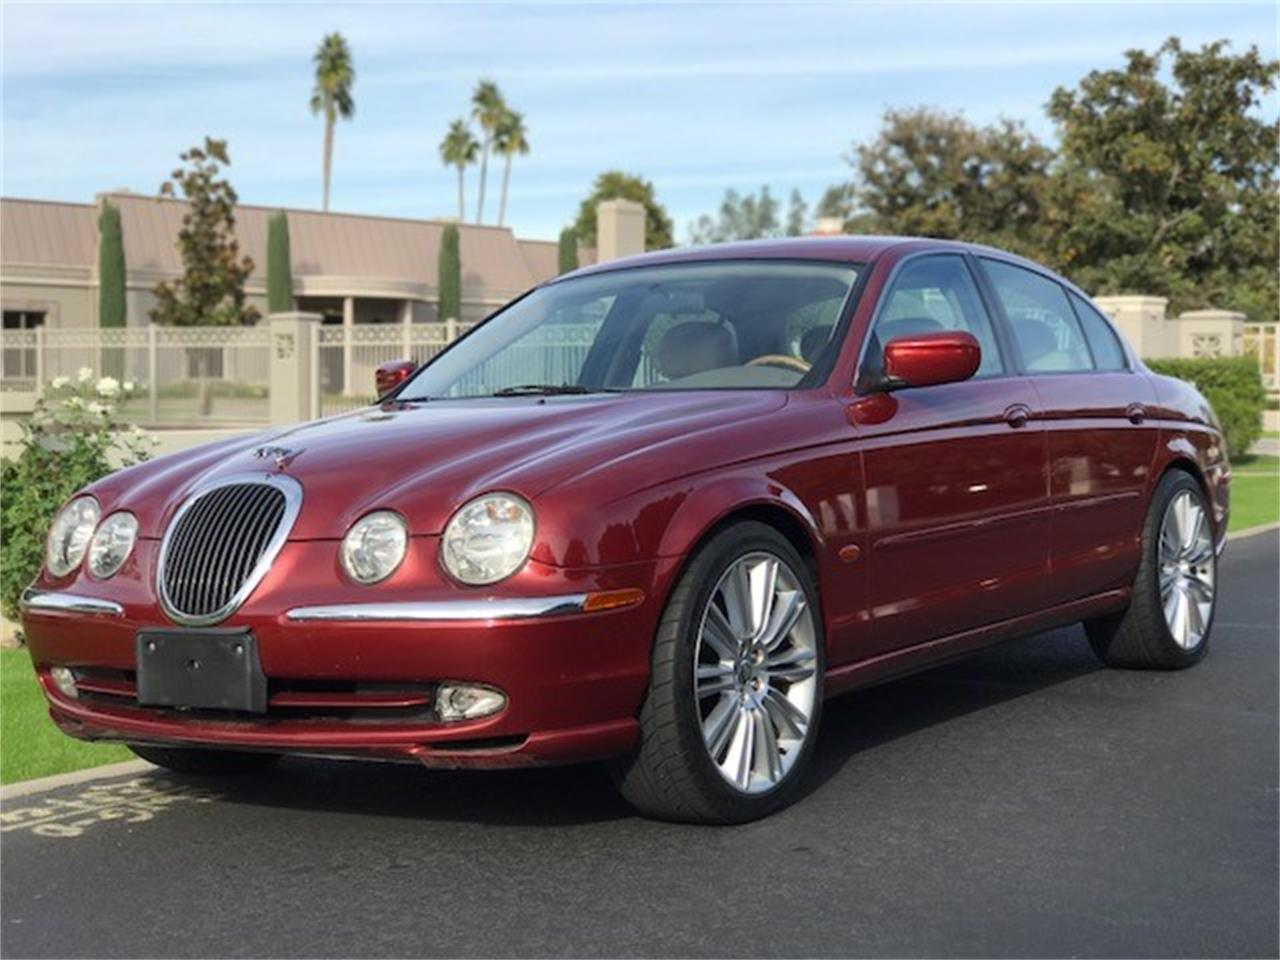 Large Picture of 2000 Jaguar S-Type located in Scottsdale Arizona - MOE1